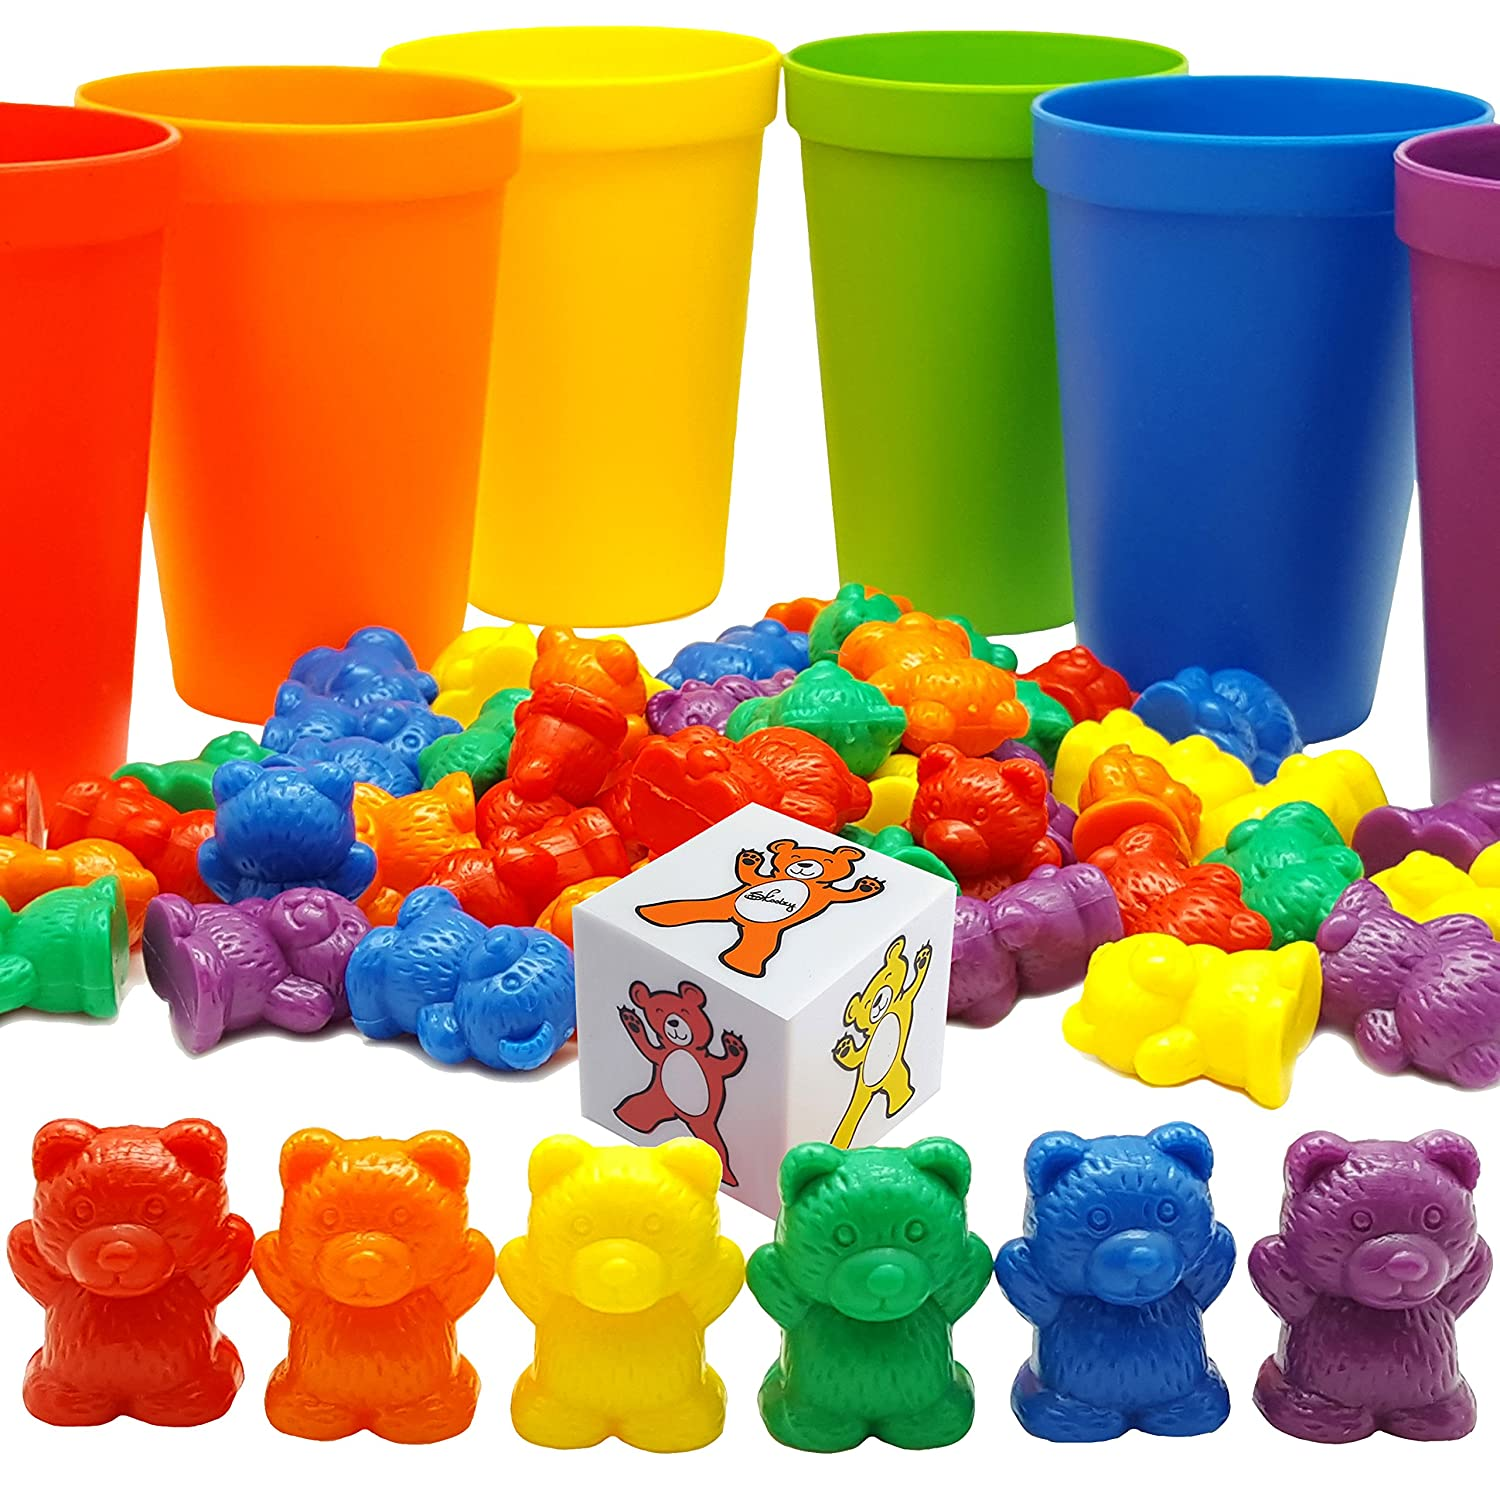 Rainbow Counting Bears with Sorting Cups and Dice - 70pc Set Review